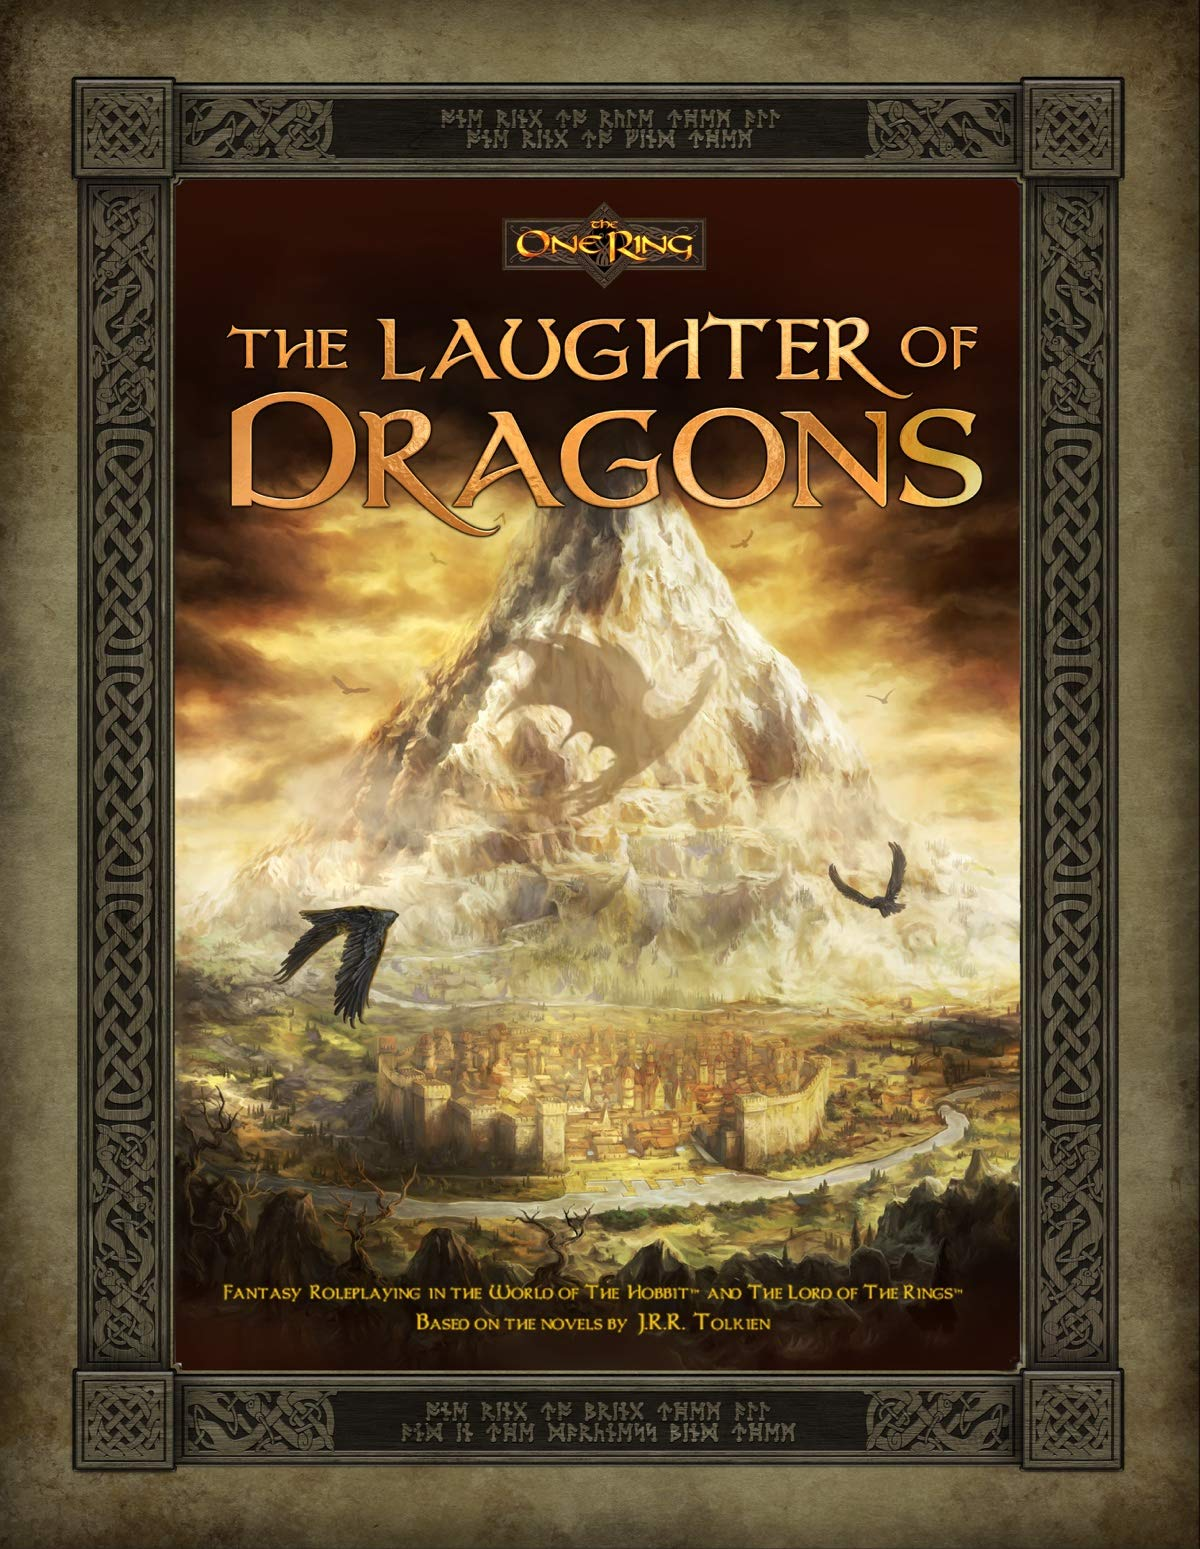 One Ring The Laughter of Dragons RPG